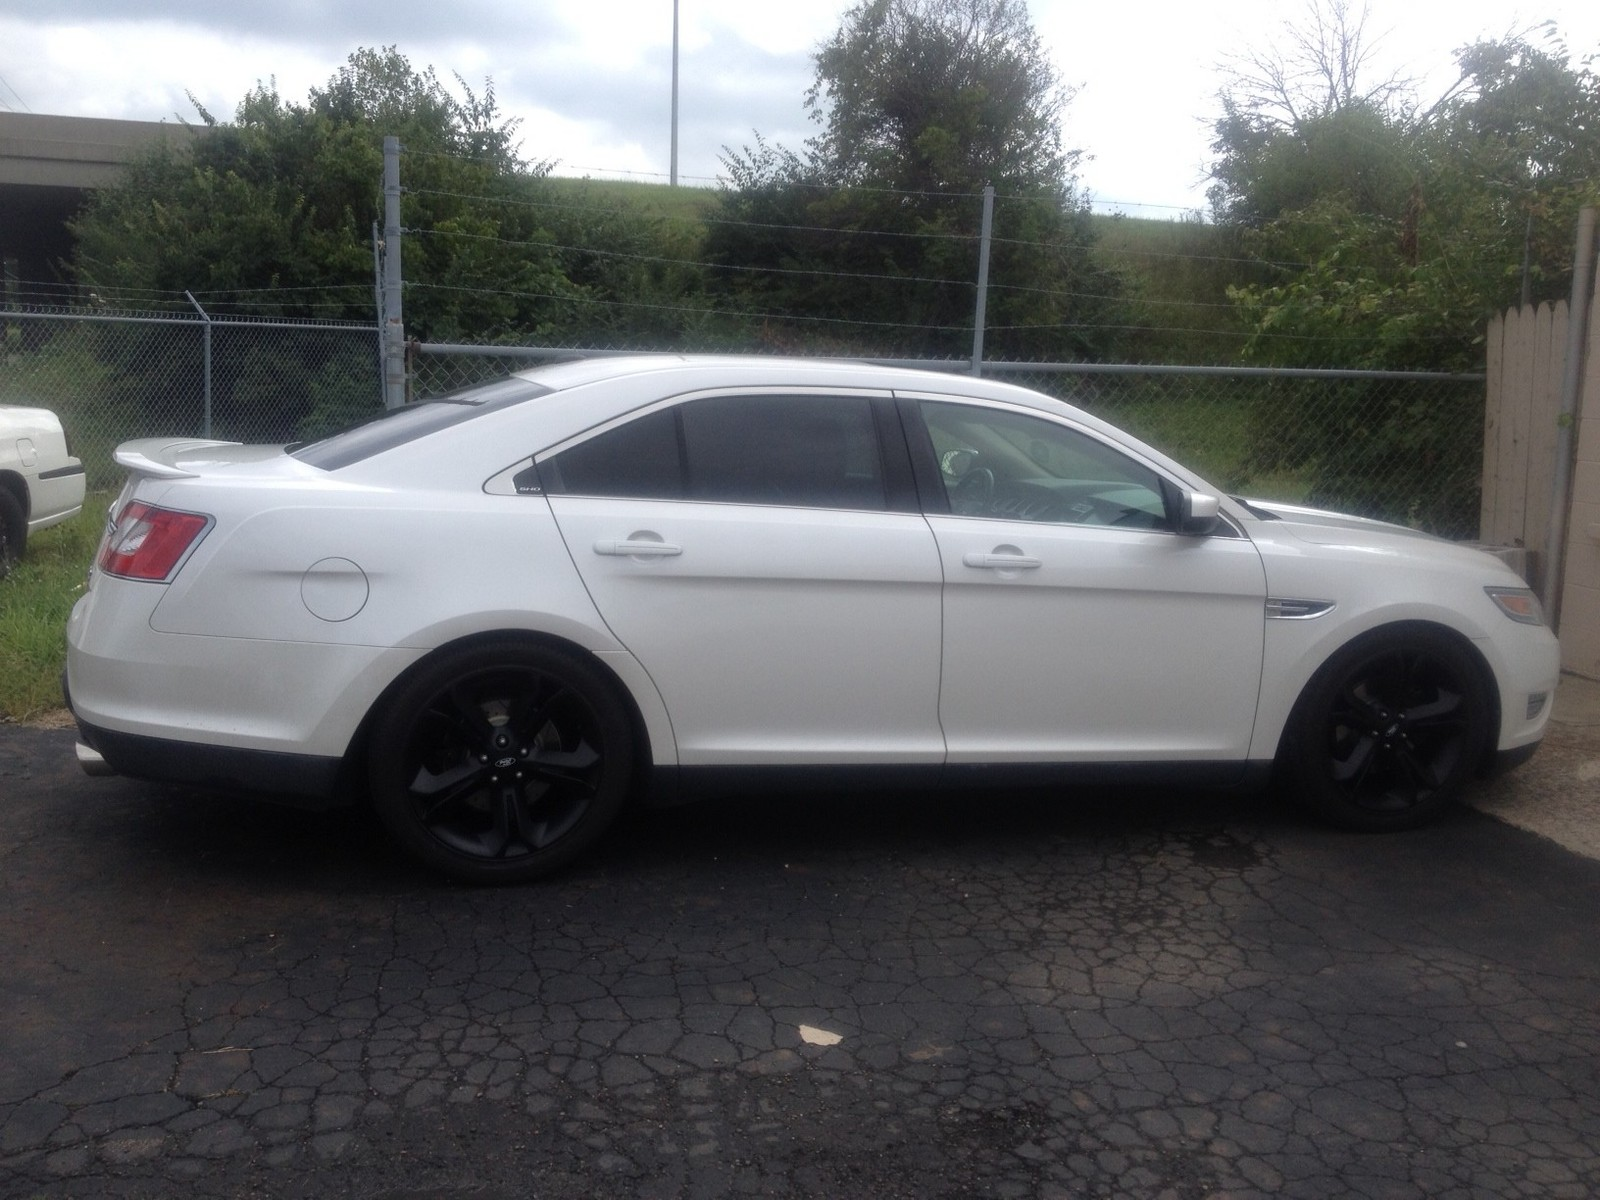 2011 White Ford Taurus SHO picture, mods, upgrades